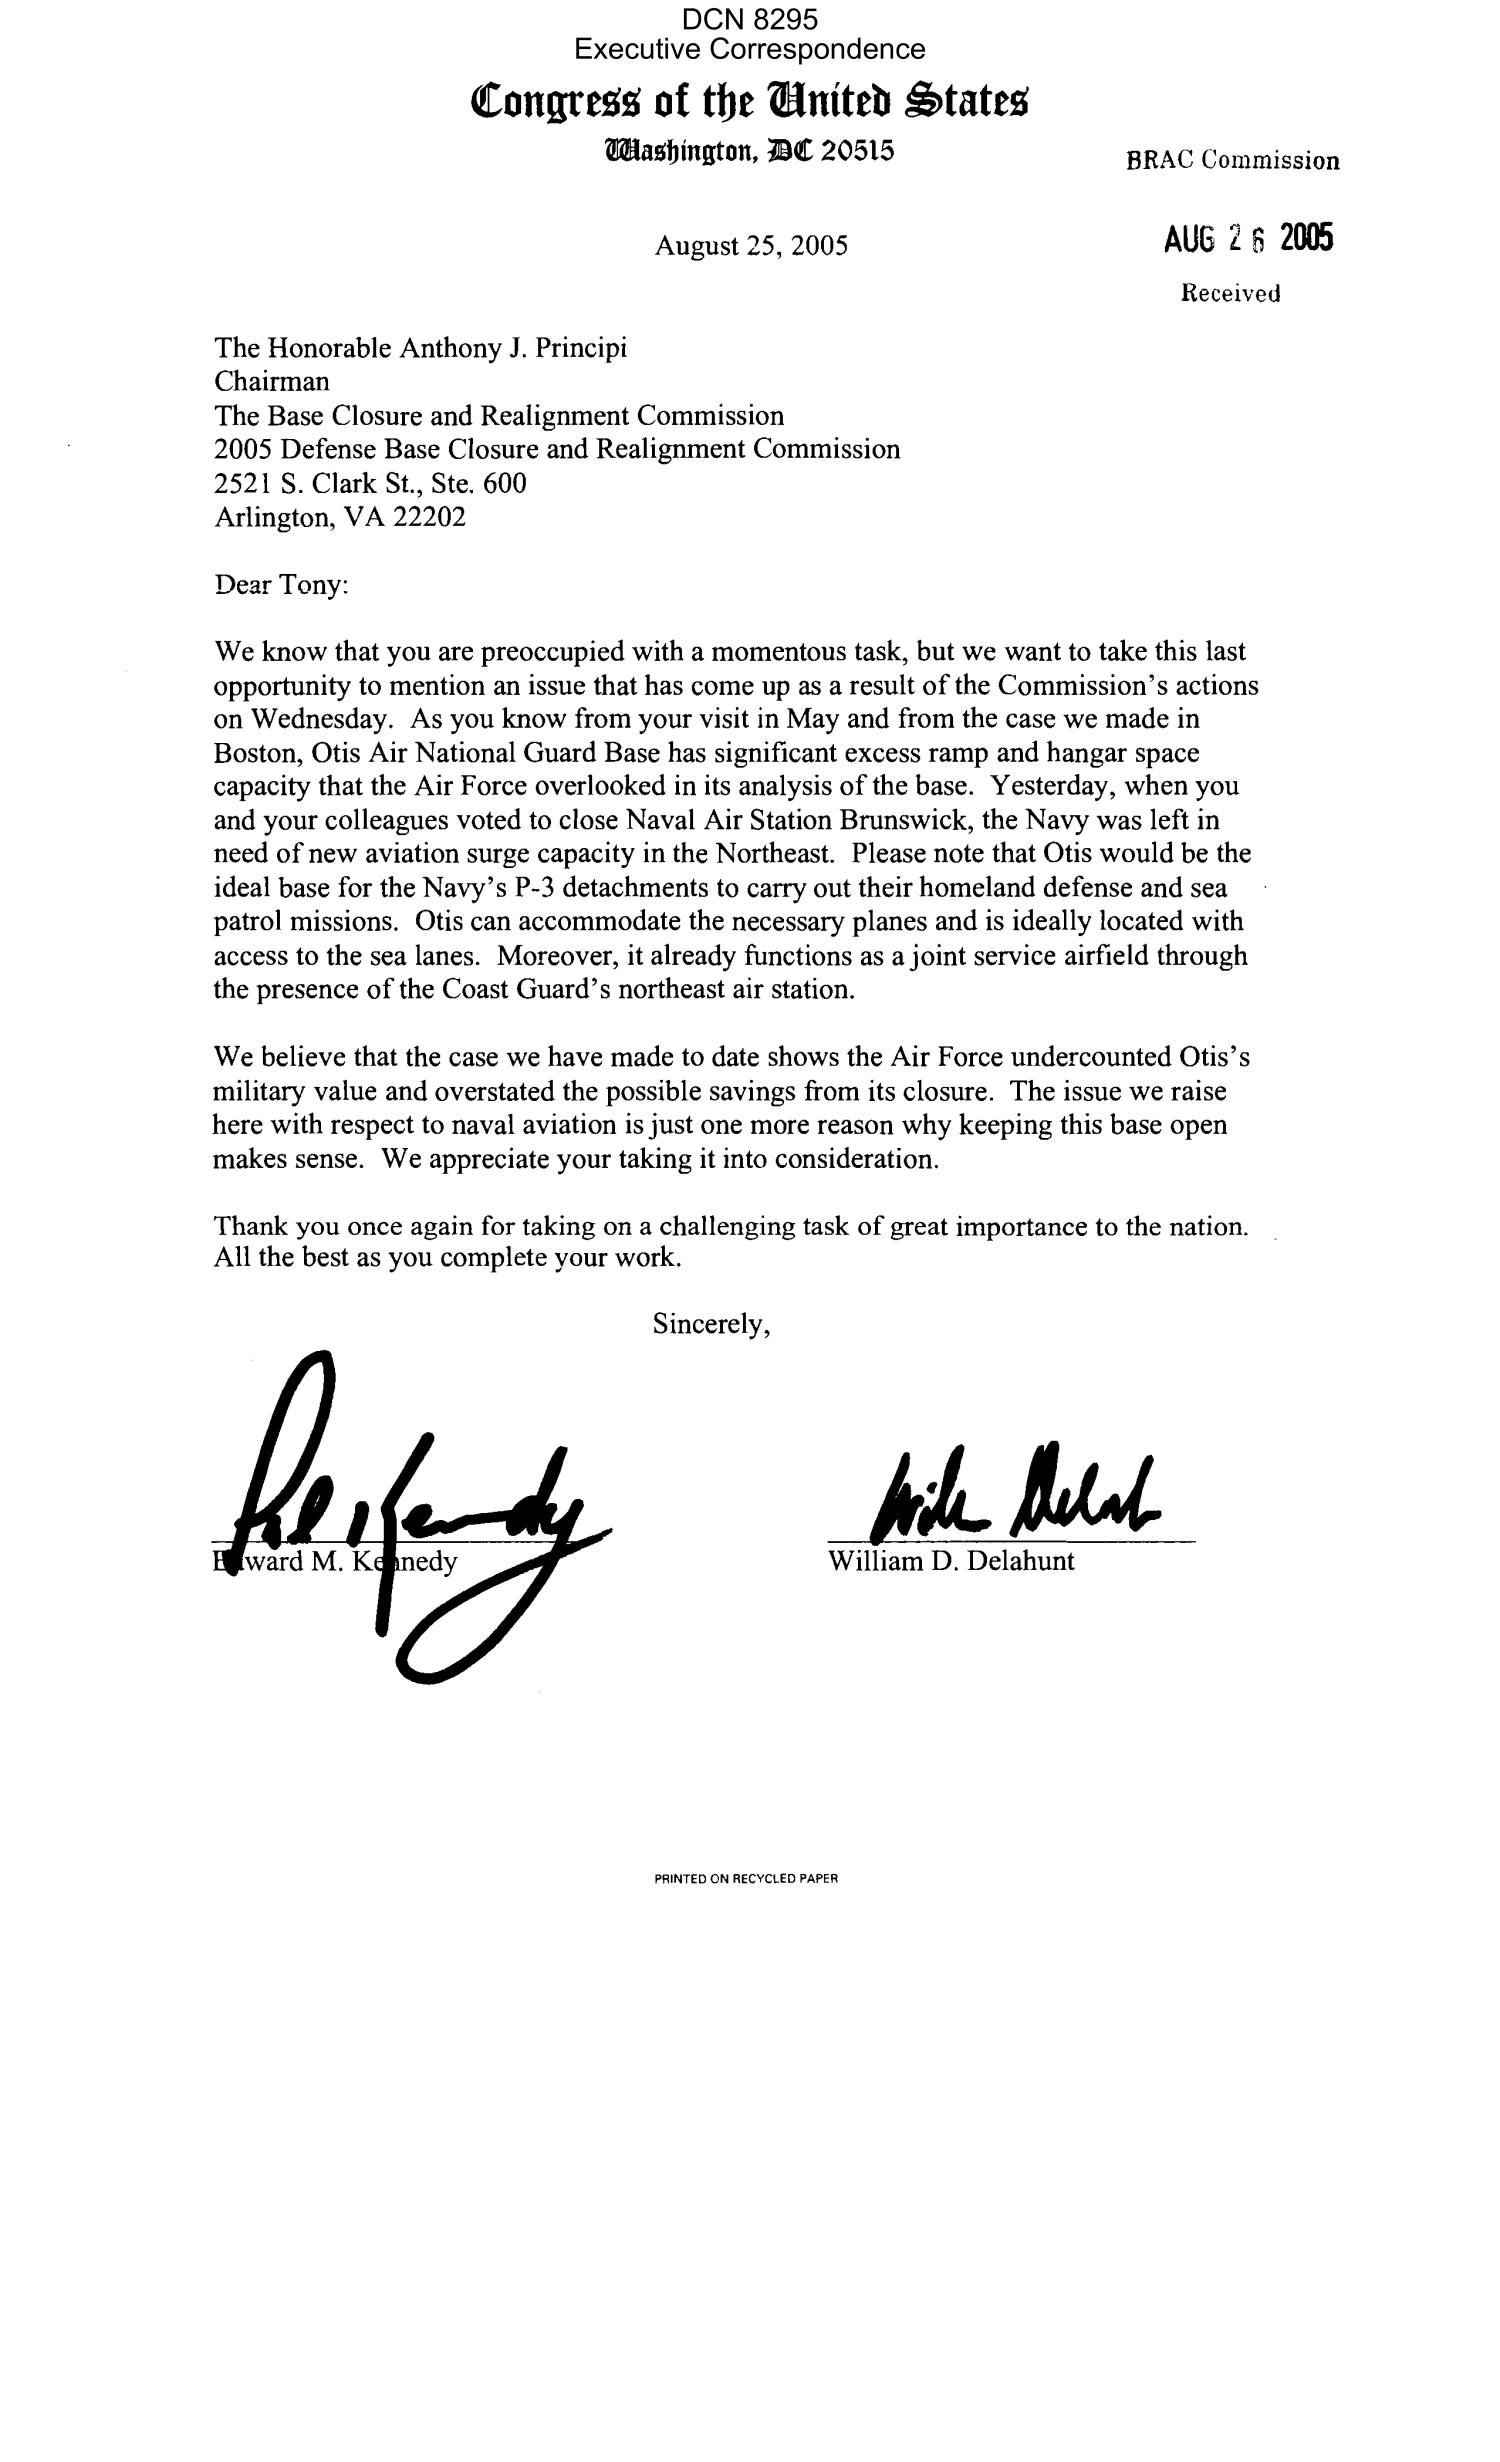 Executive Correspondence – Letter dtd 08/25/05 to Chairman Principi and all the Commissioners from MA Senator Edward Kennedy and Representative Delahunt (MA, 10th)                                                                                                      [Sequence #]: 1 of 9